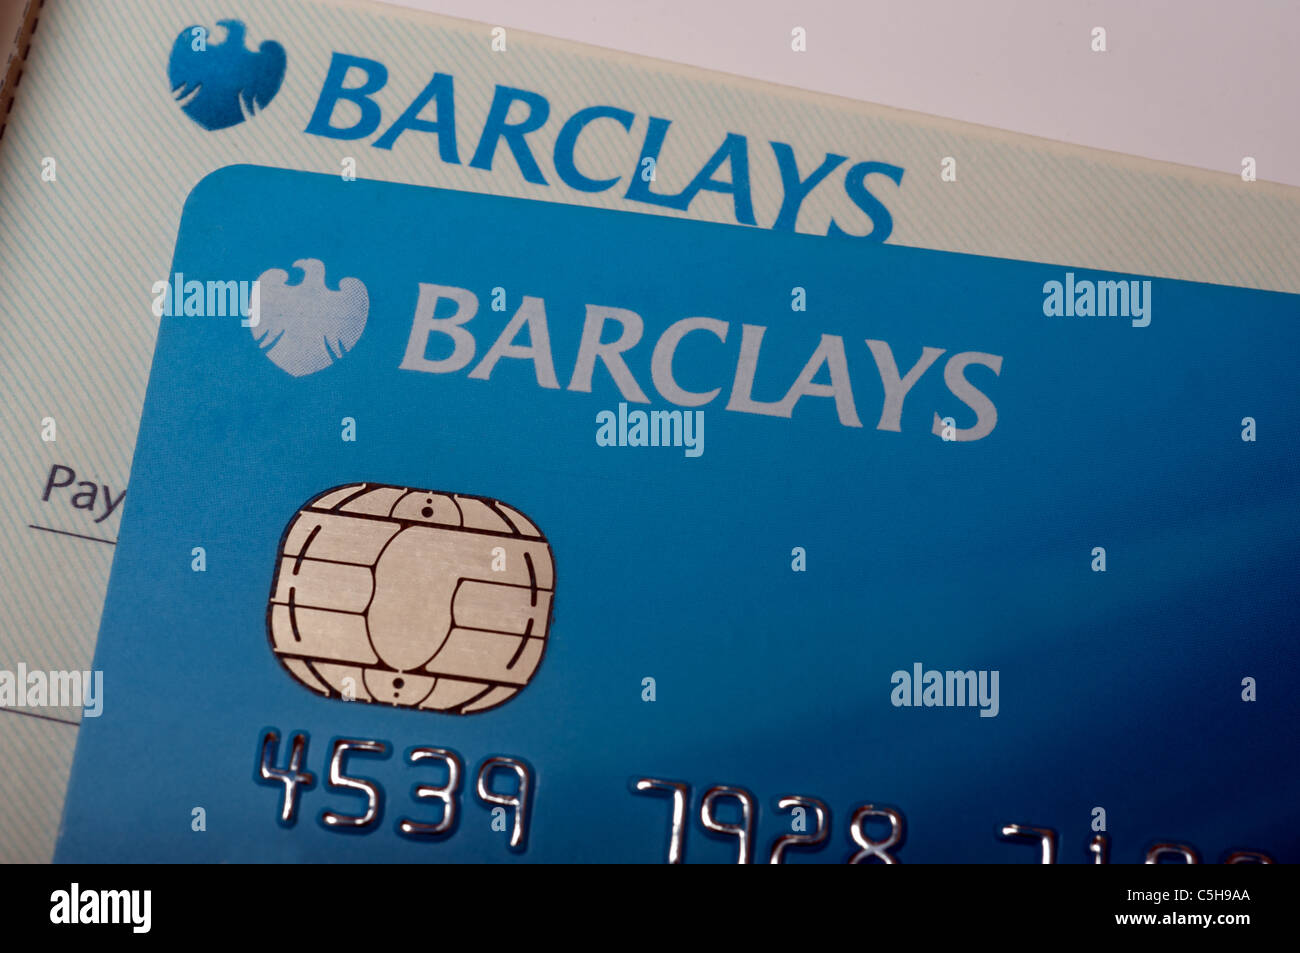 Barclays debit card and cheque book stock photo royalty for Barclay business card